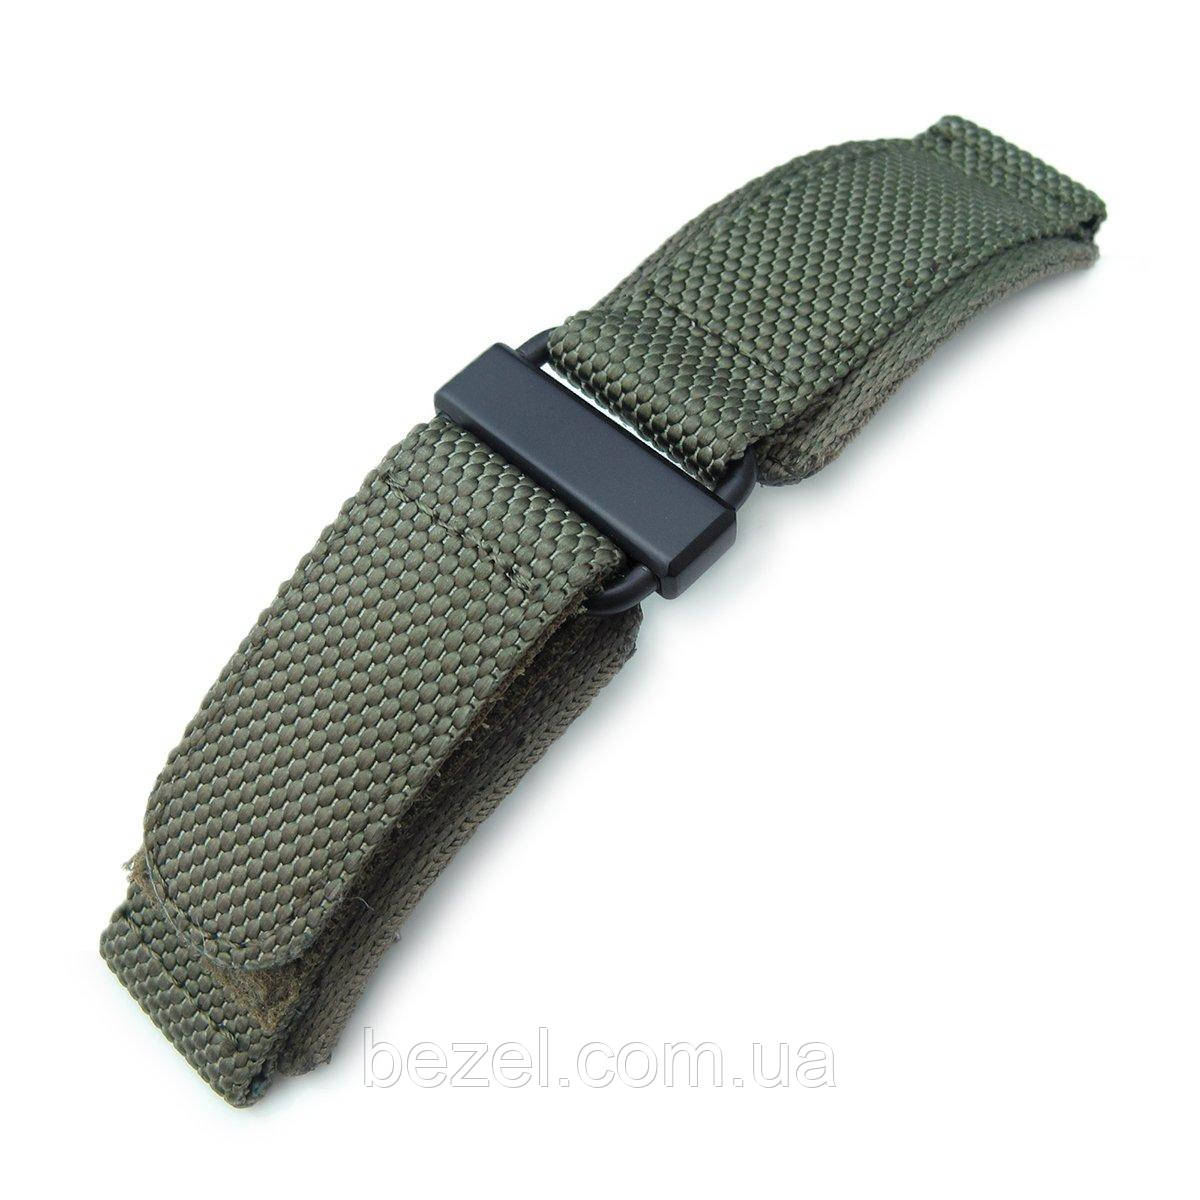 22mm MiLTAT Honeycomb Military Green Nylon Velcro Fastener Watch Strap, PVD Black Stainless Buckle